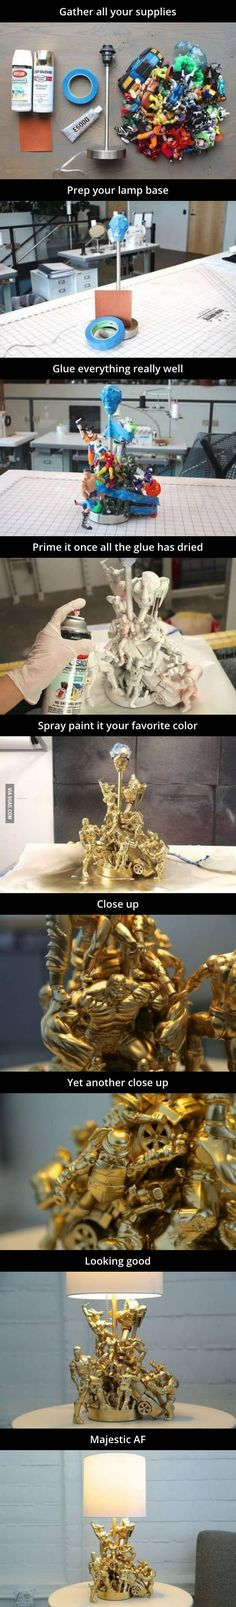 Make your old toys into a lamp. - 9GAG